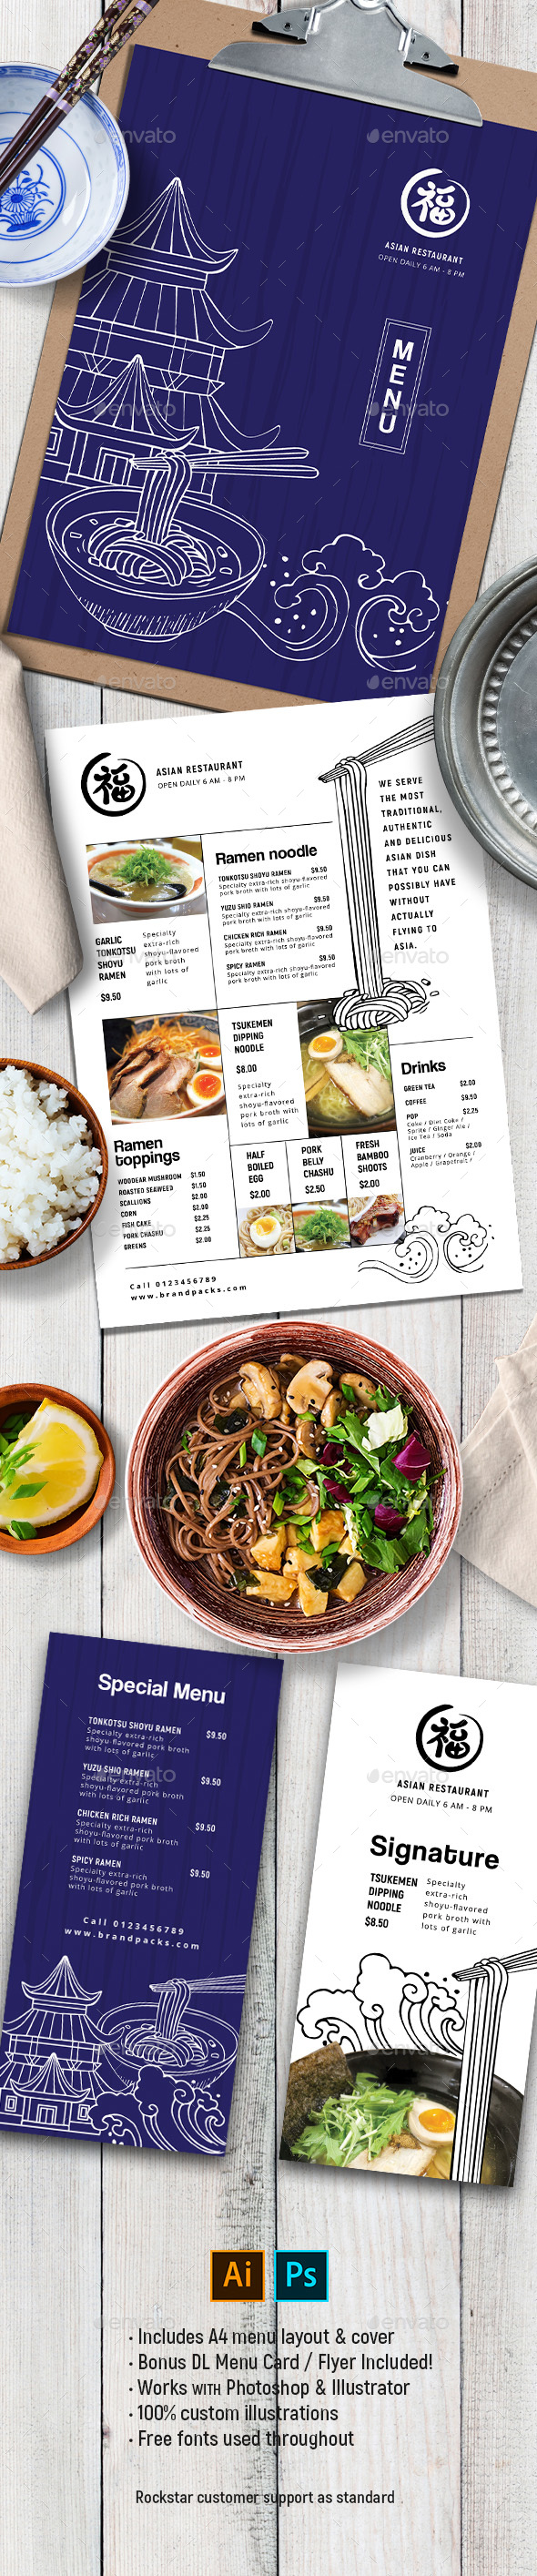 Asian Menu Template - Food Menus Print Templates